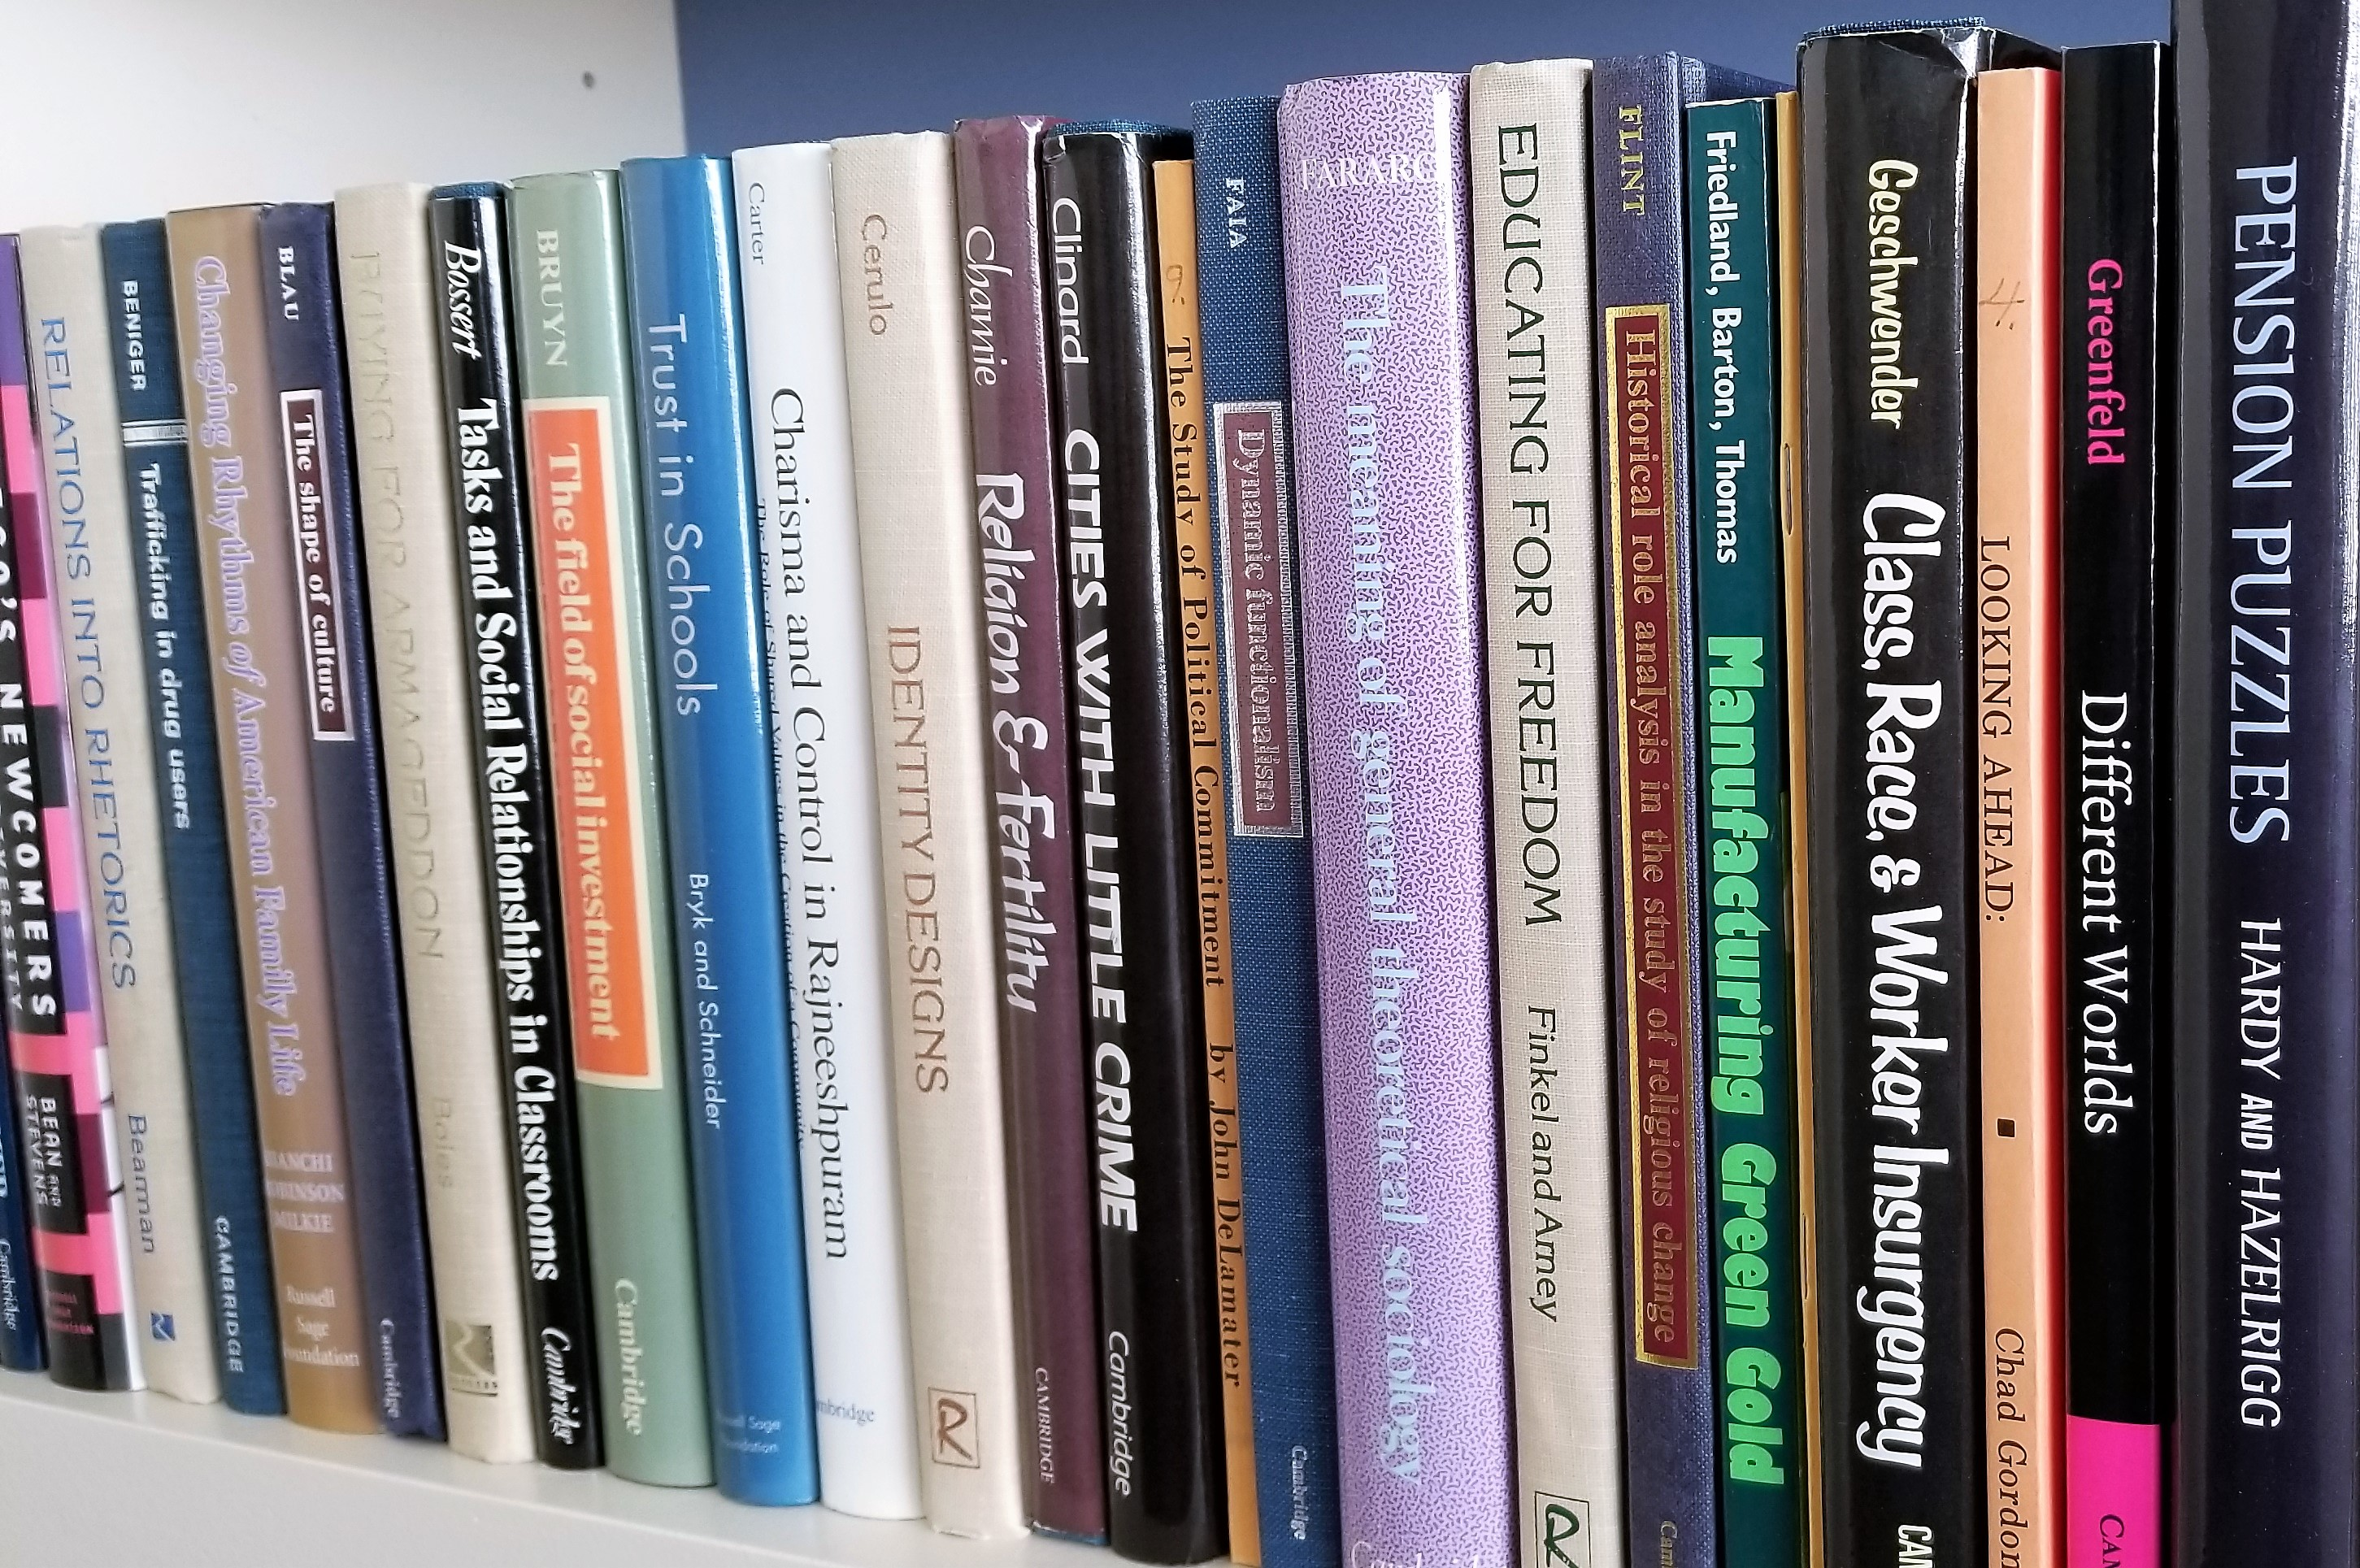 Photo of the spines of selected Rose Series in Sociology volumes.